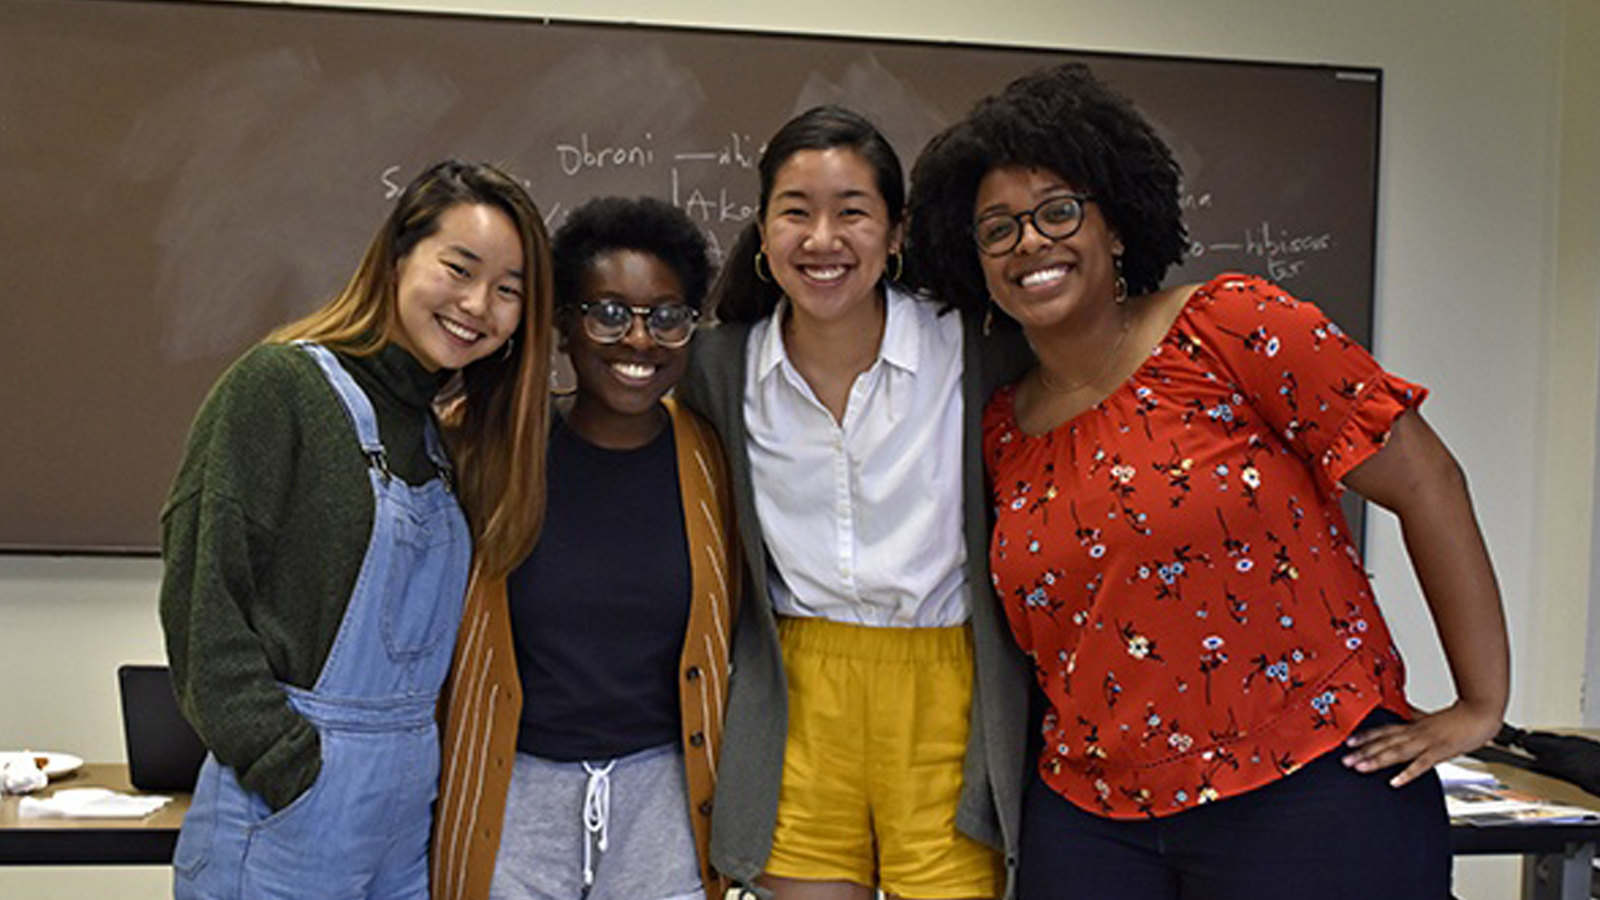 A team of students — Timia Bethea, Christina Cho, Vida Nwadiei and Rebecca Chen — stand together in front of classroom chalkboard, smiling.